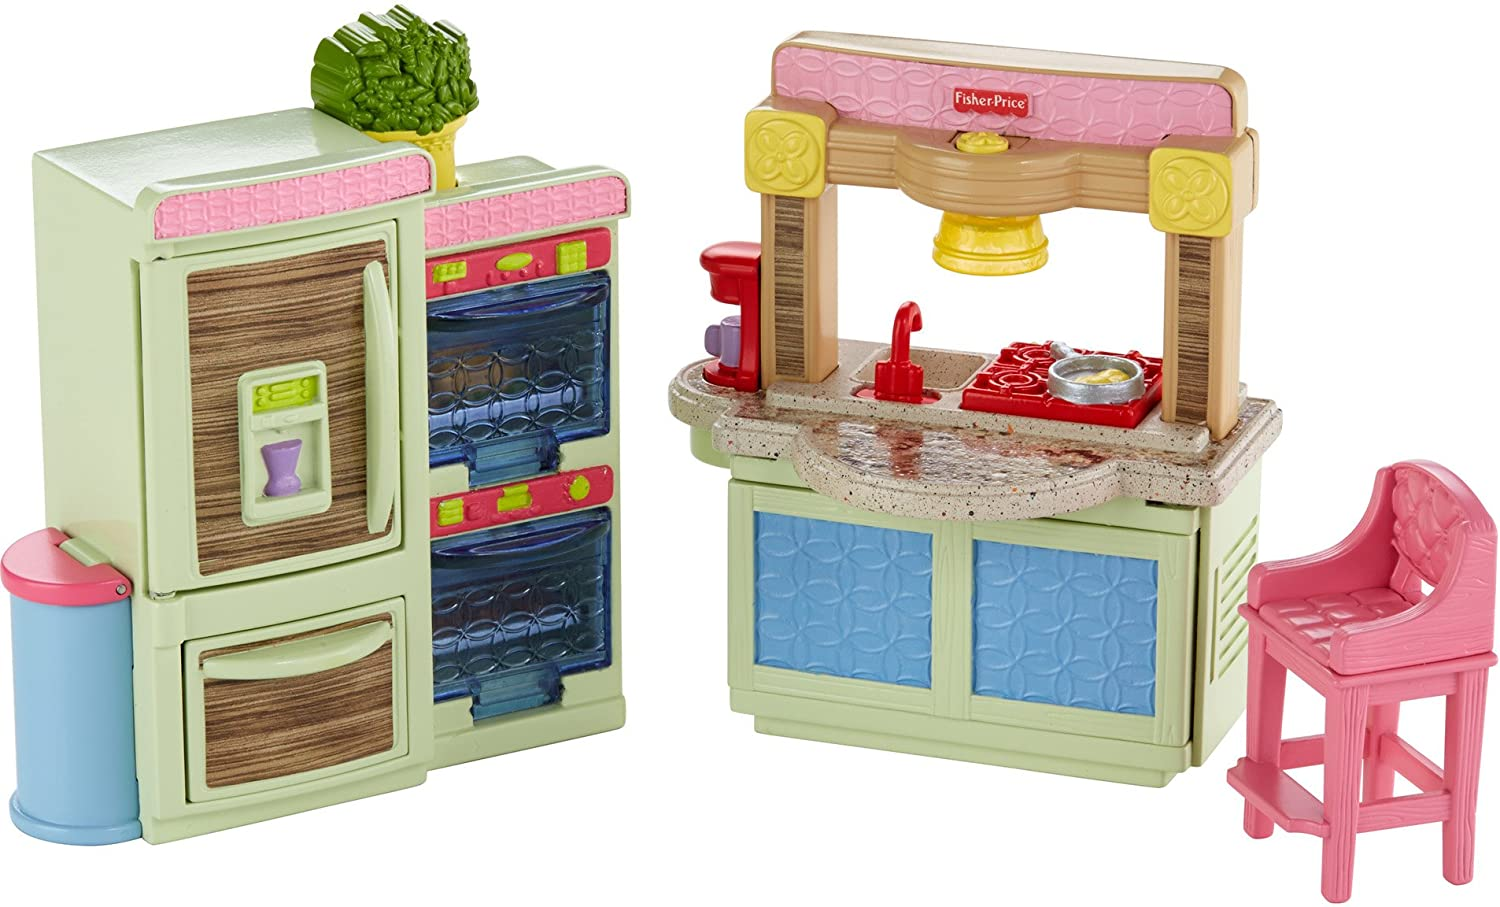 Fisher price doll house furniture - Fisher Price Doll House Furniture 52